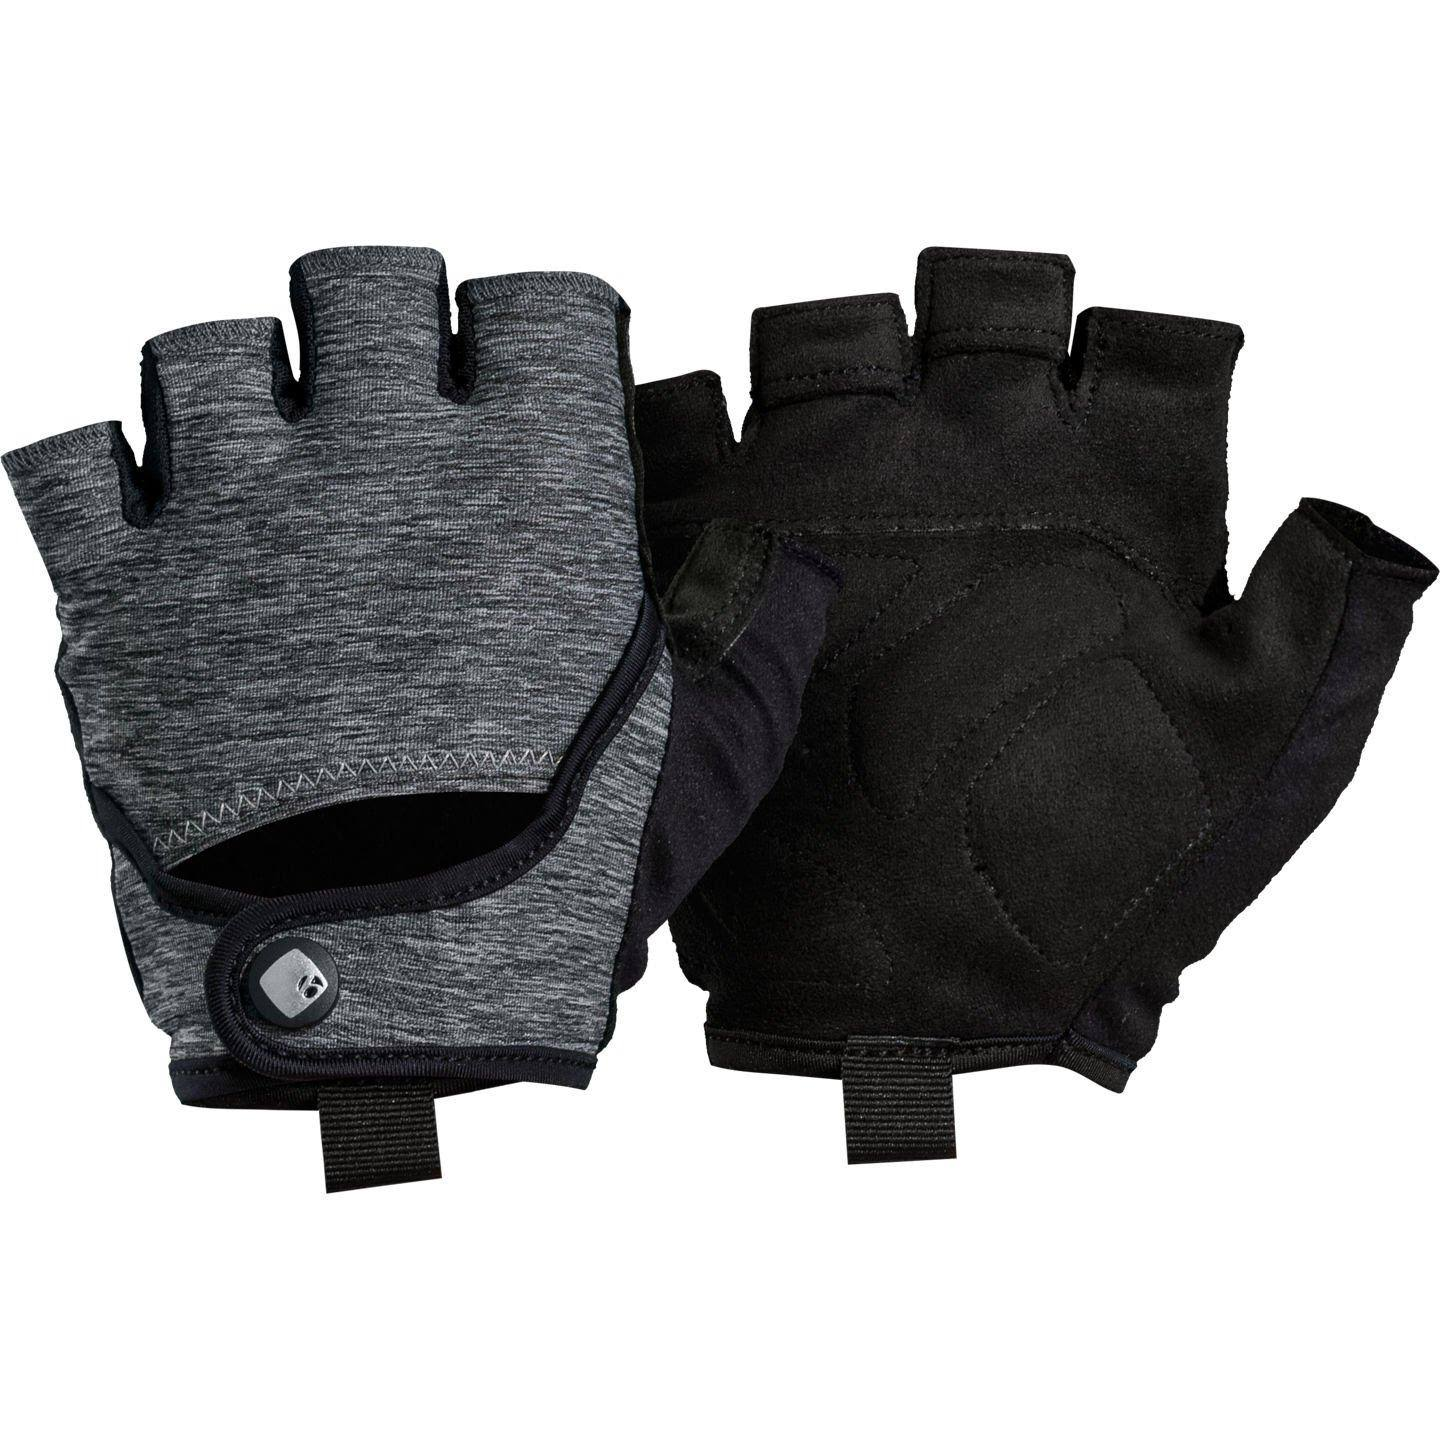 Bontrager Women's Vella Gloves - Black, Medium